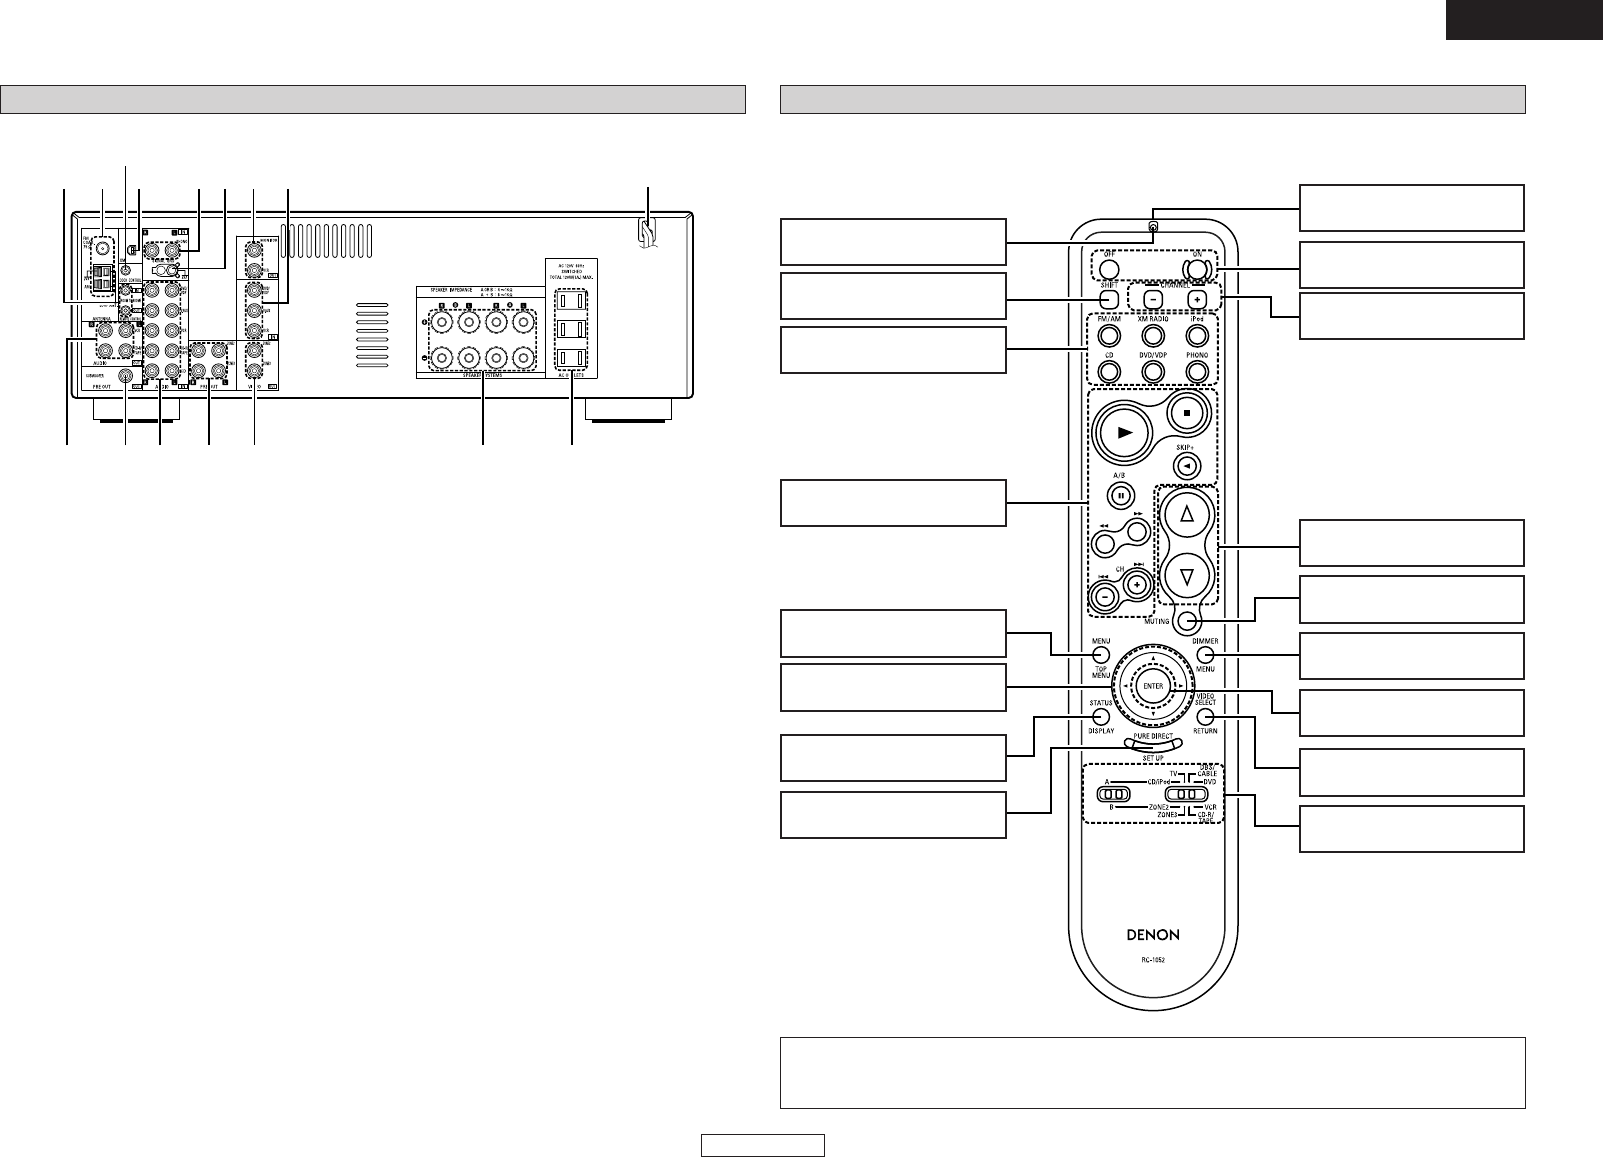 Page 7 of Denon Stereo Receiver DRA-397 User Guide